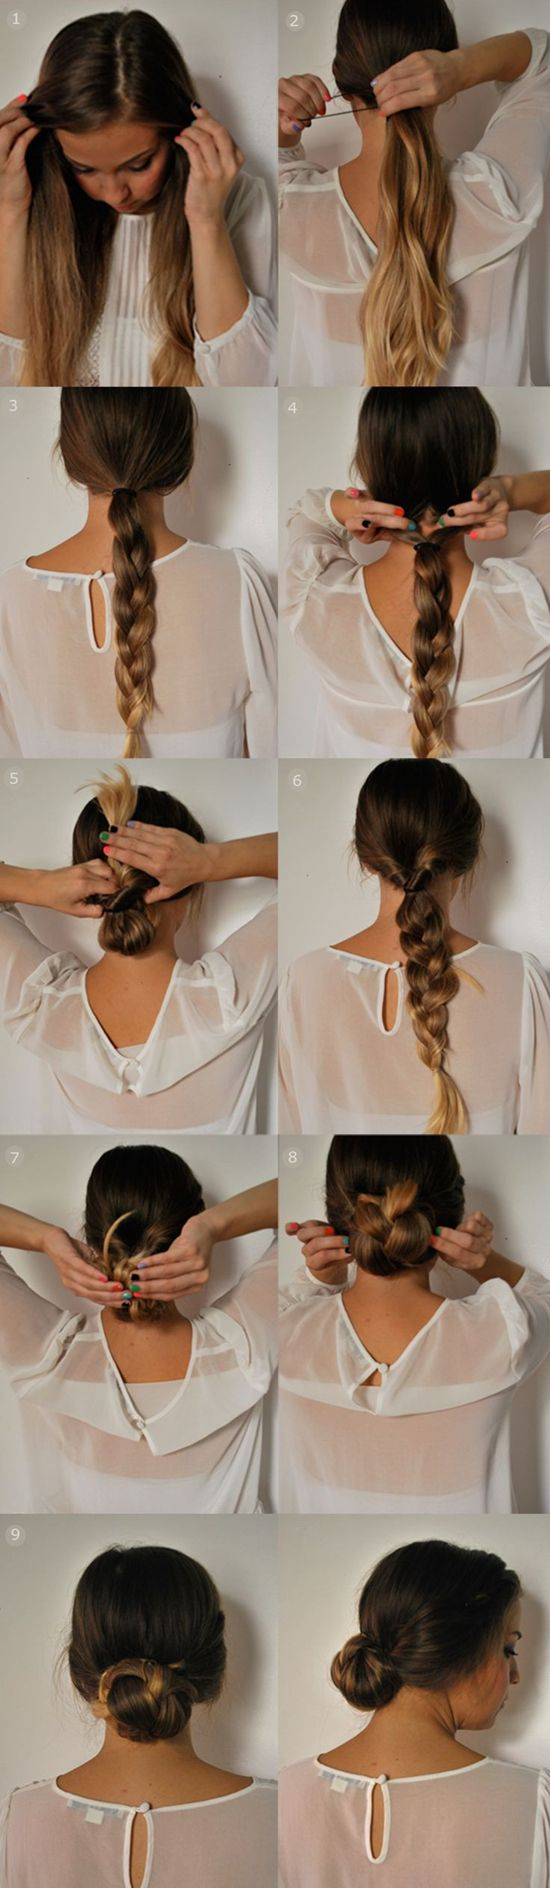 13 Fantastic Hairstyle Tutorials for Ladies | Latest Bob HairStyles